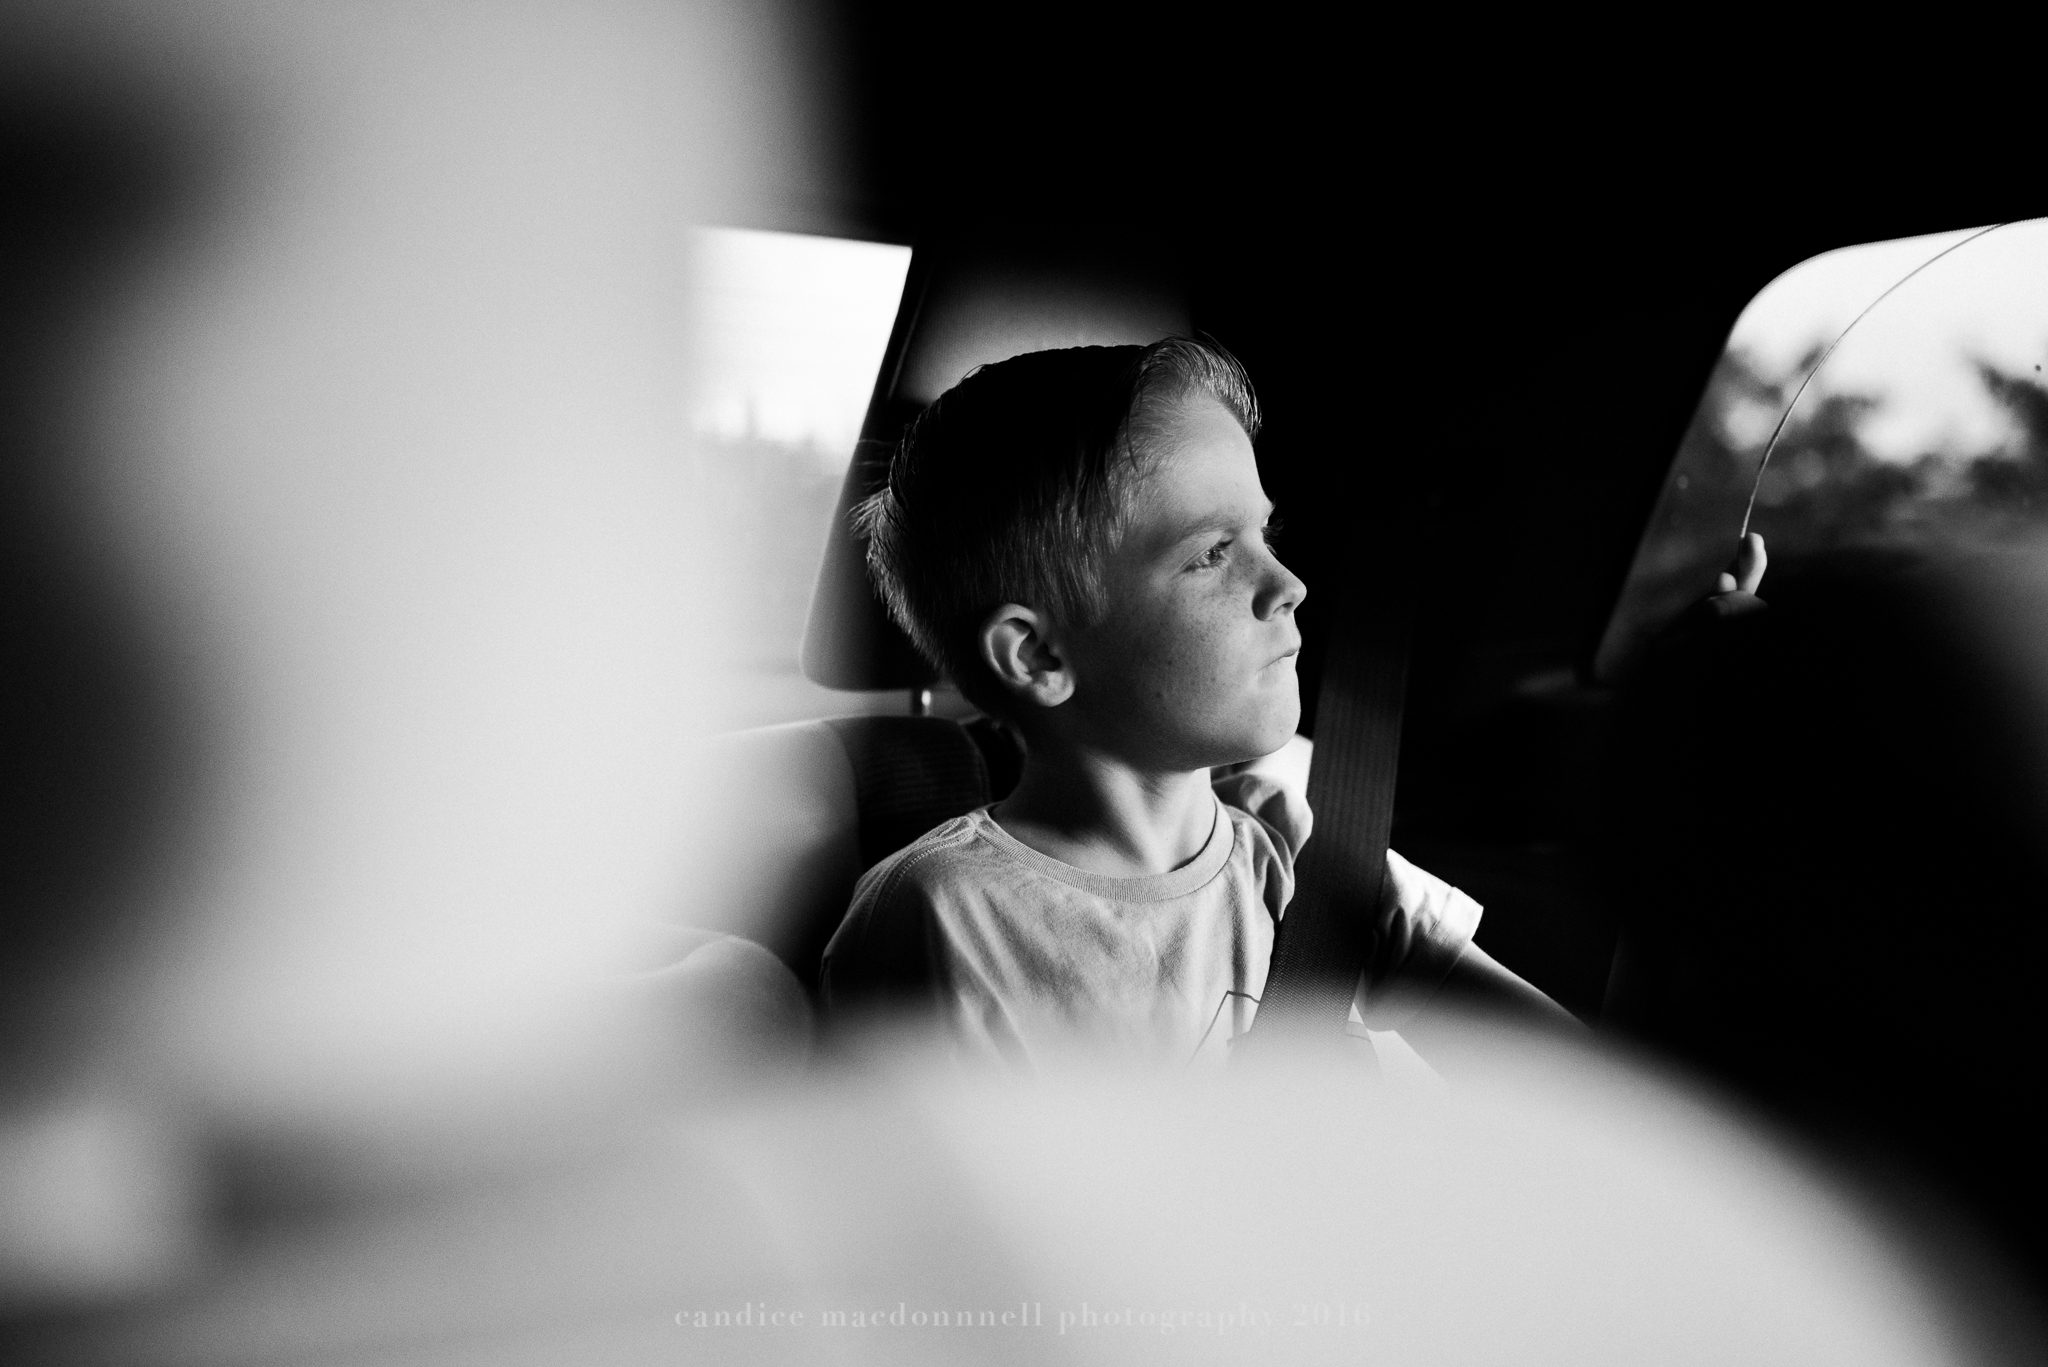 thoughtful child in car lifestyle photography by candice macdonnell photography, oahu hawaii documentary photographer